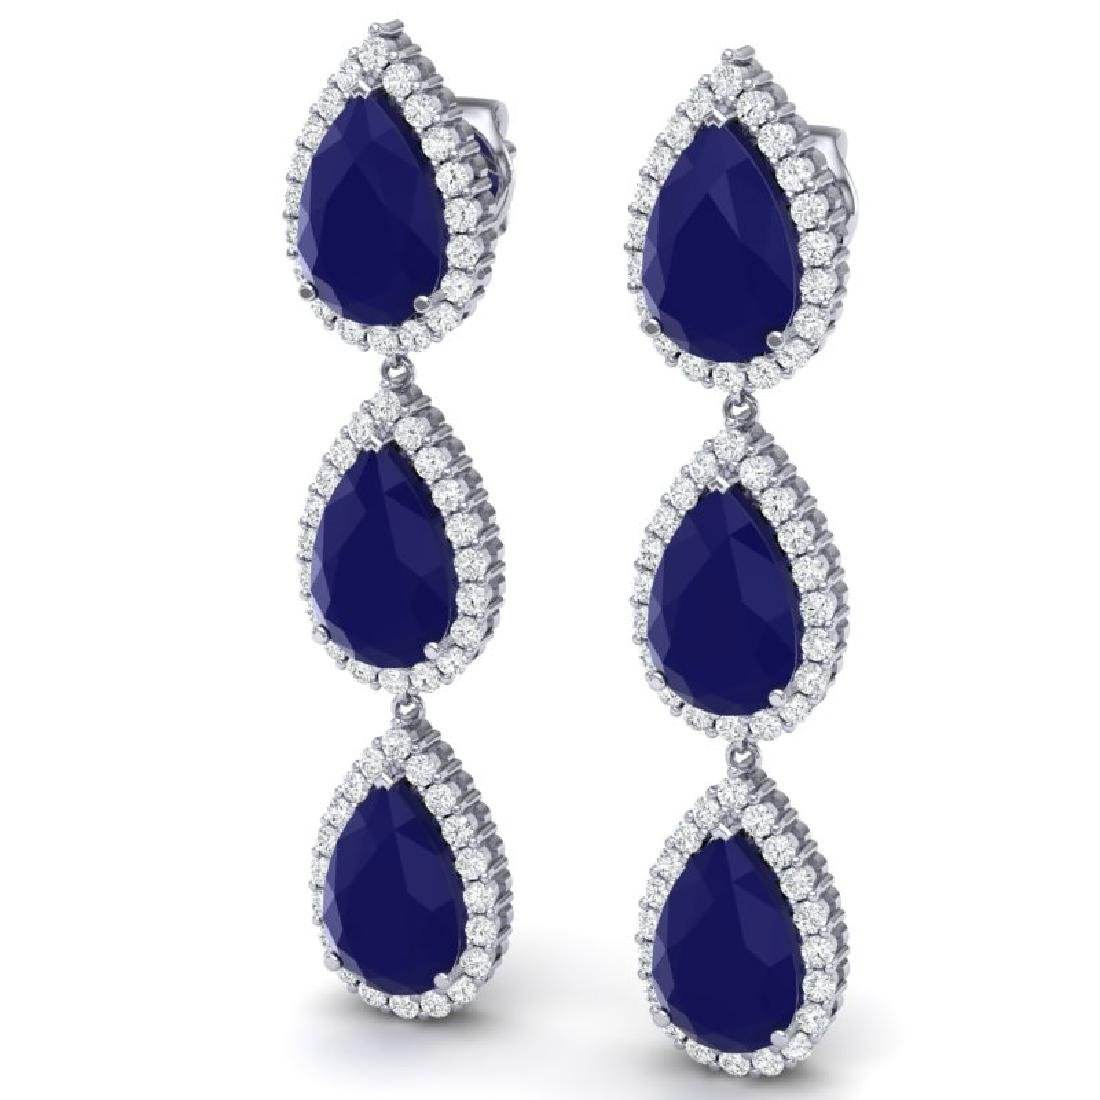 27.06 CTW Royalty Sapphire & VS Diamond Earrings 18K - 2